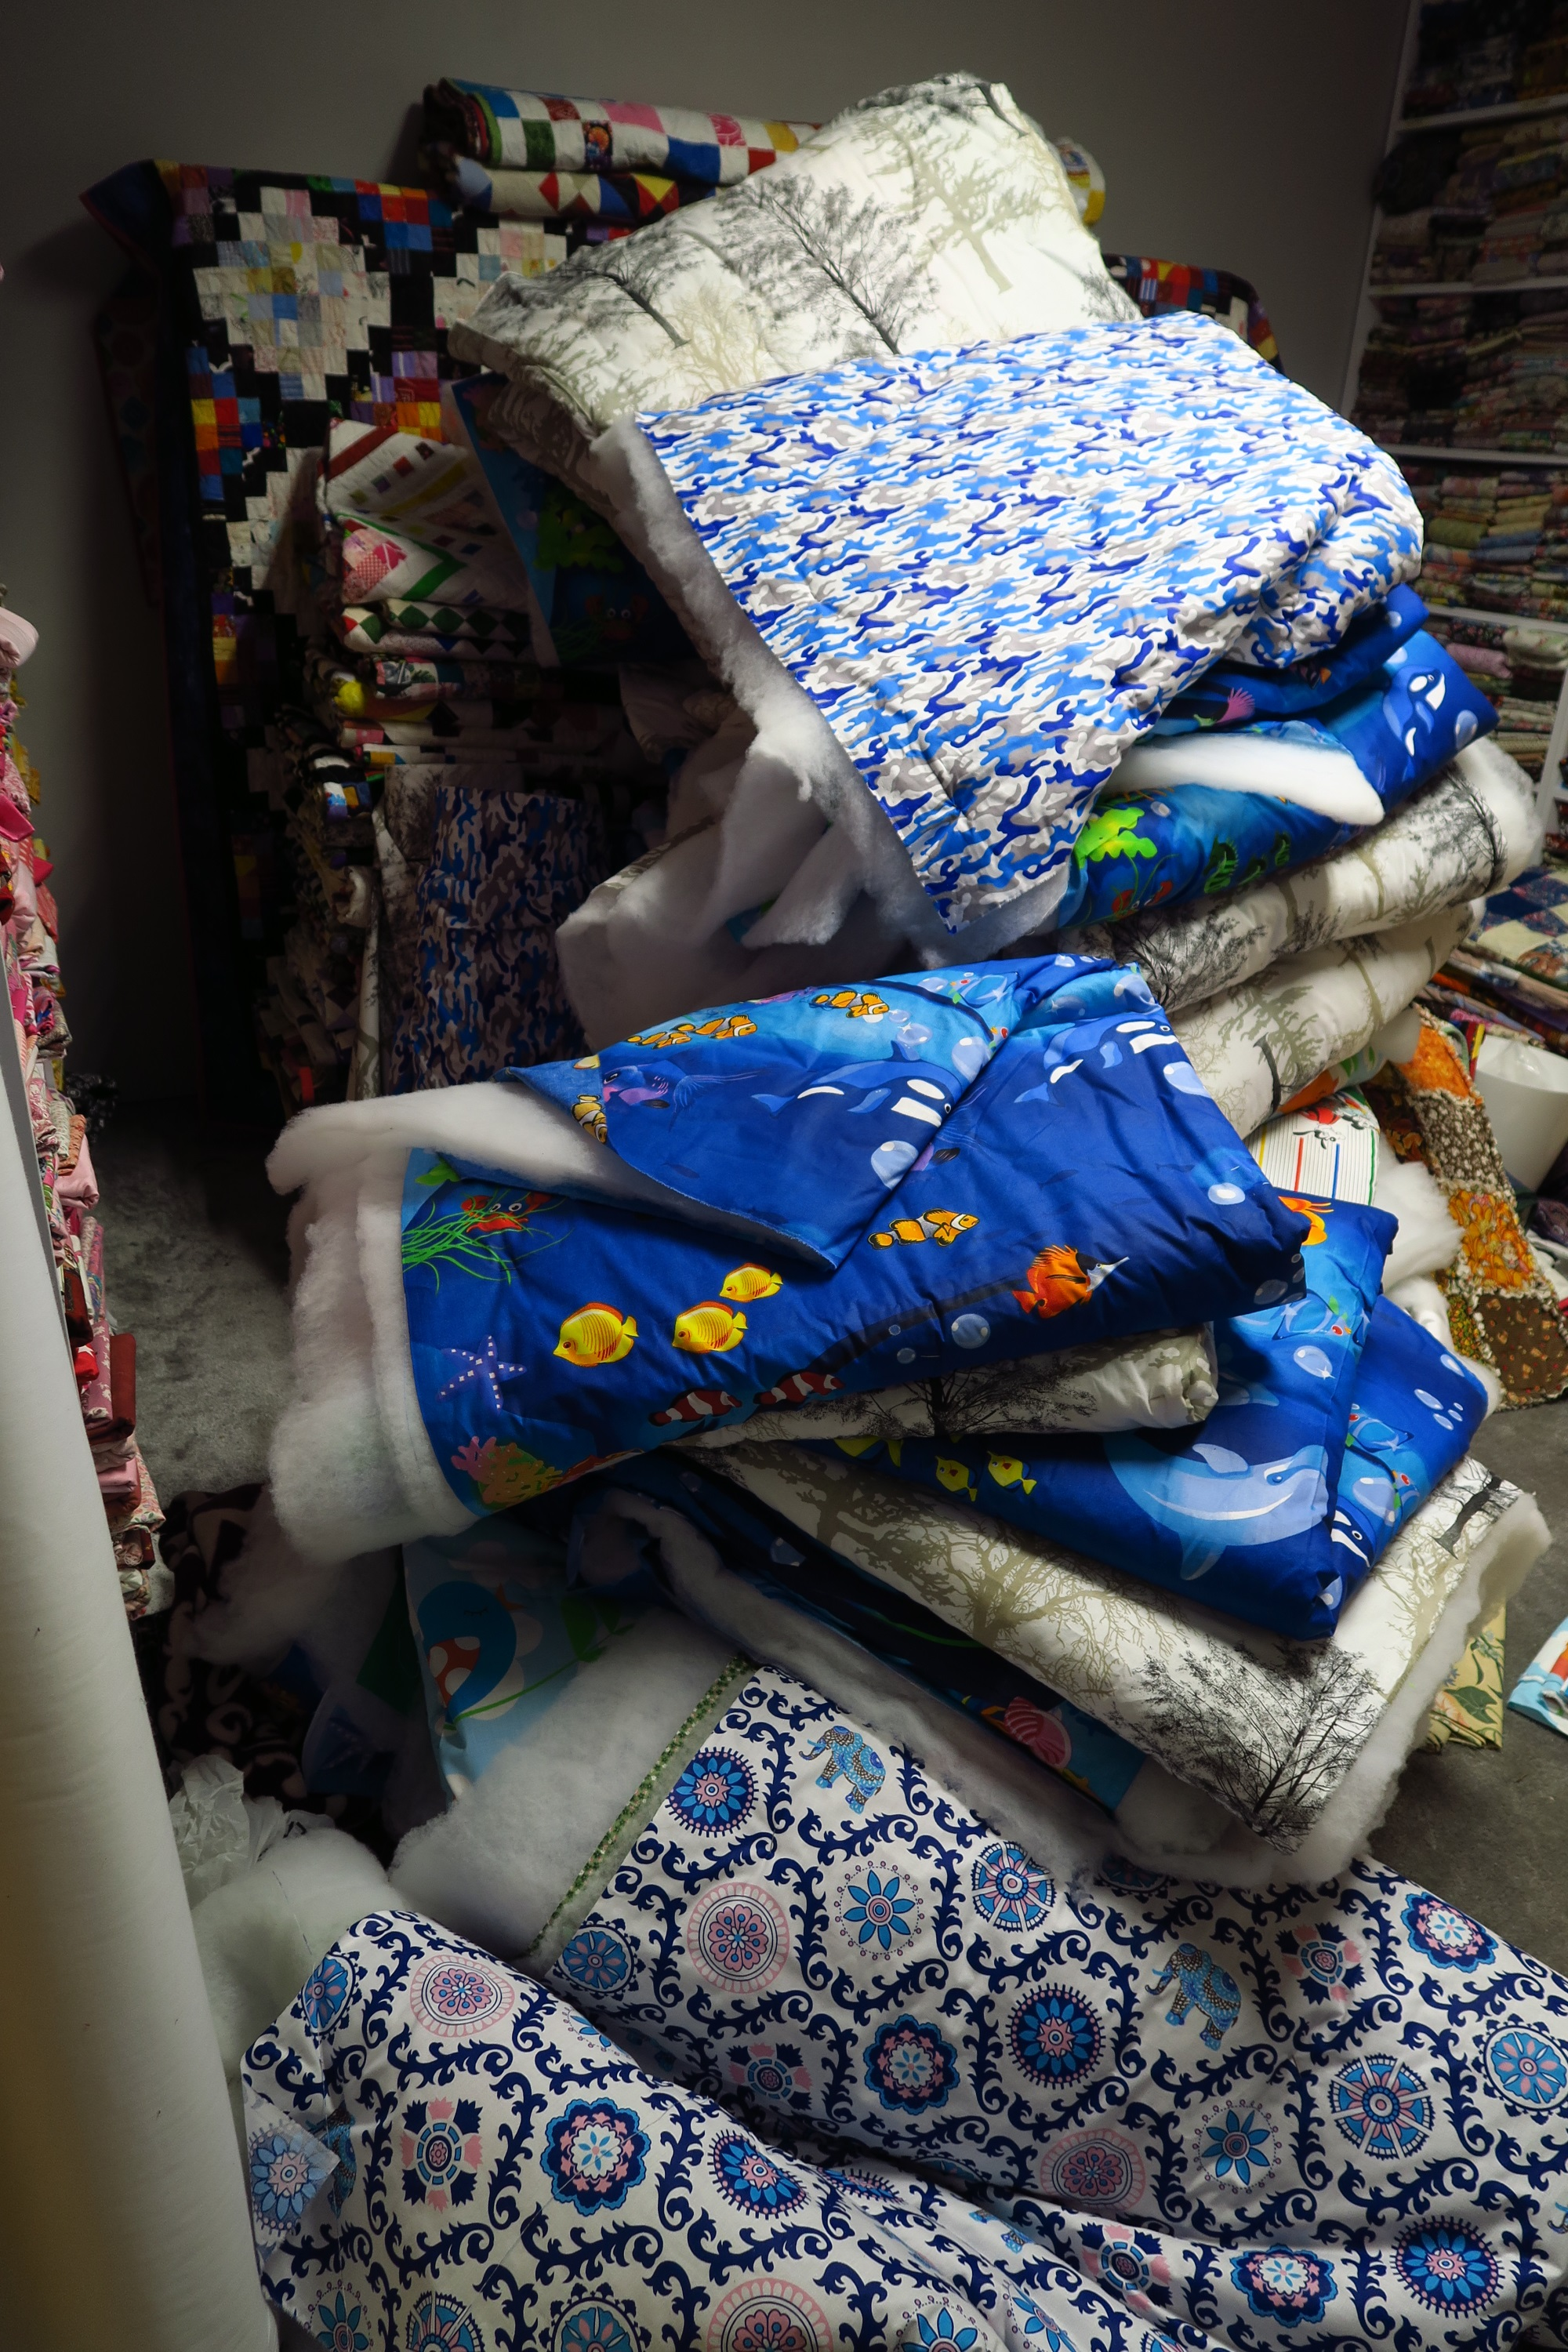 This is not a pile of 50 quilts.It's probably between 40 and 50, though. I have some in the sewing room right now and some were just outside the door of this room when I took the picture. You can pile sandwiched quilts only so high before they fall over.